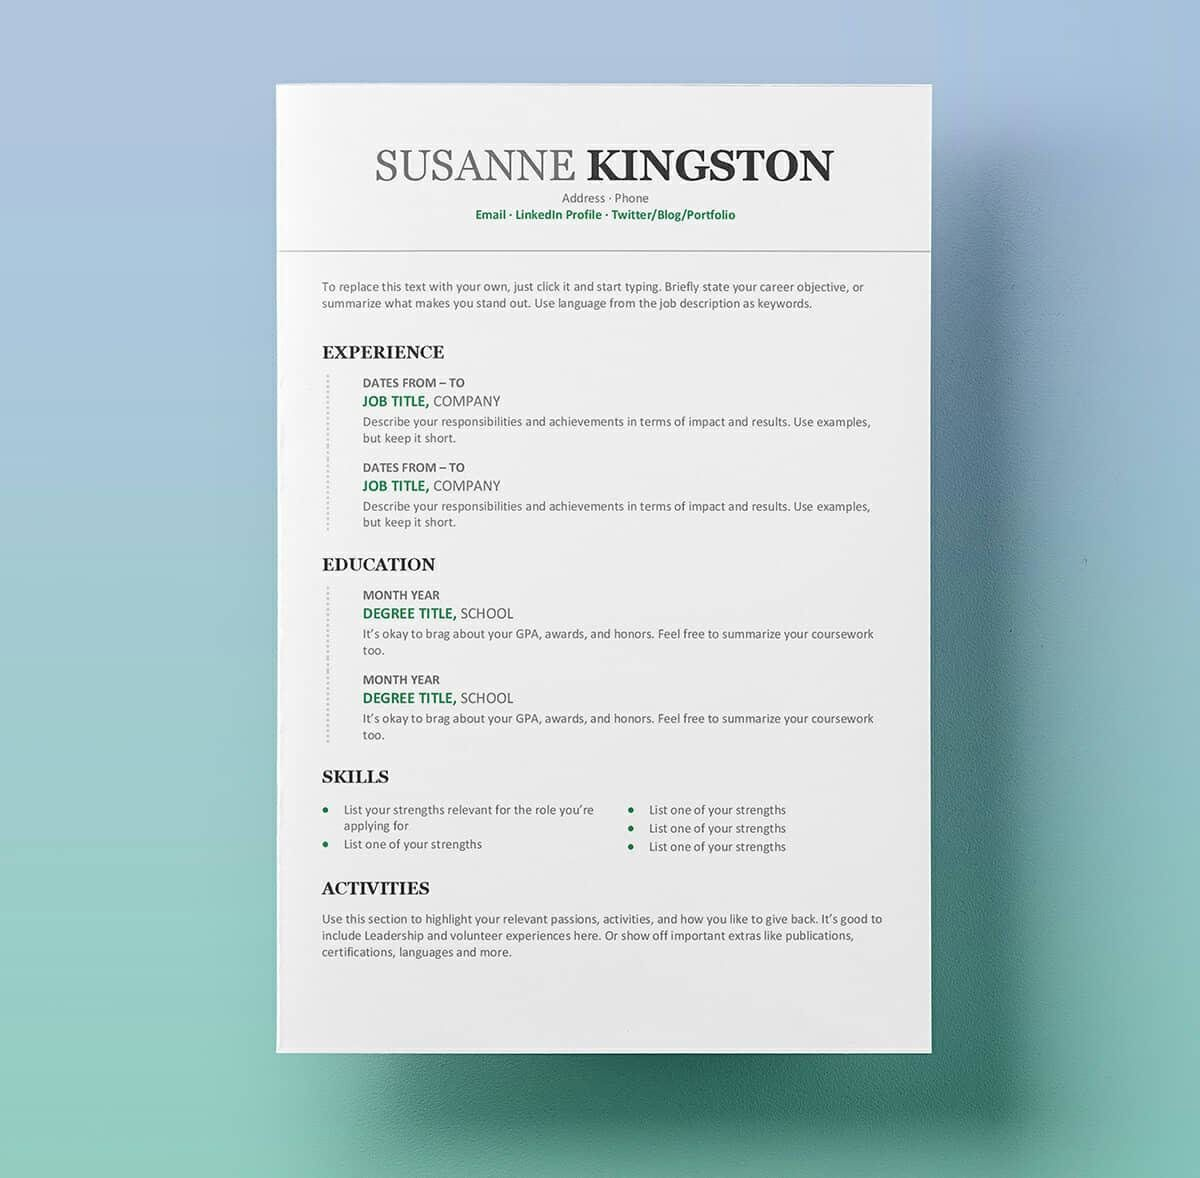 008 Incredible Free Word Resume Template Highest Clarity  M 2019 Download Australia Creative Microsoft For FresherFull